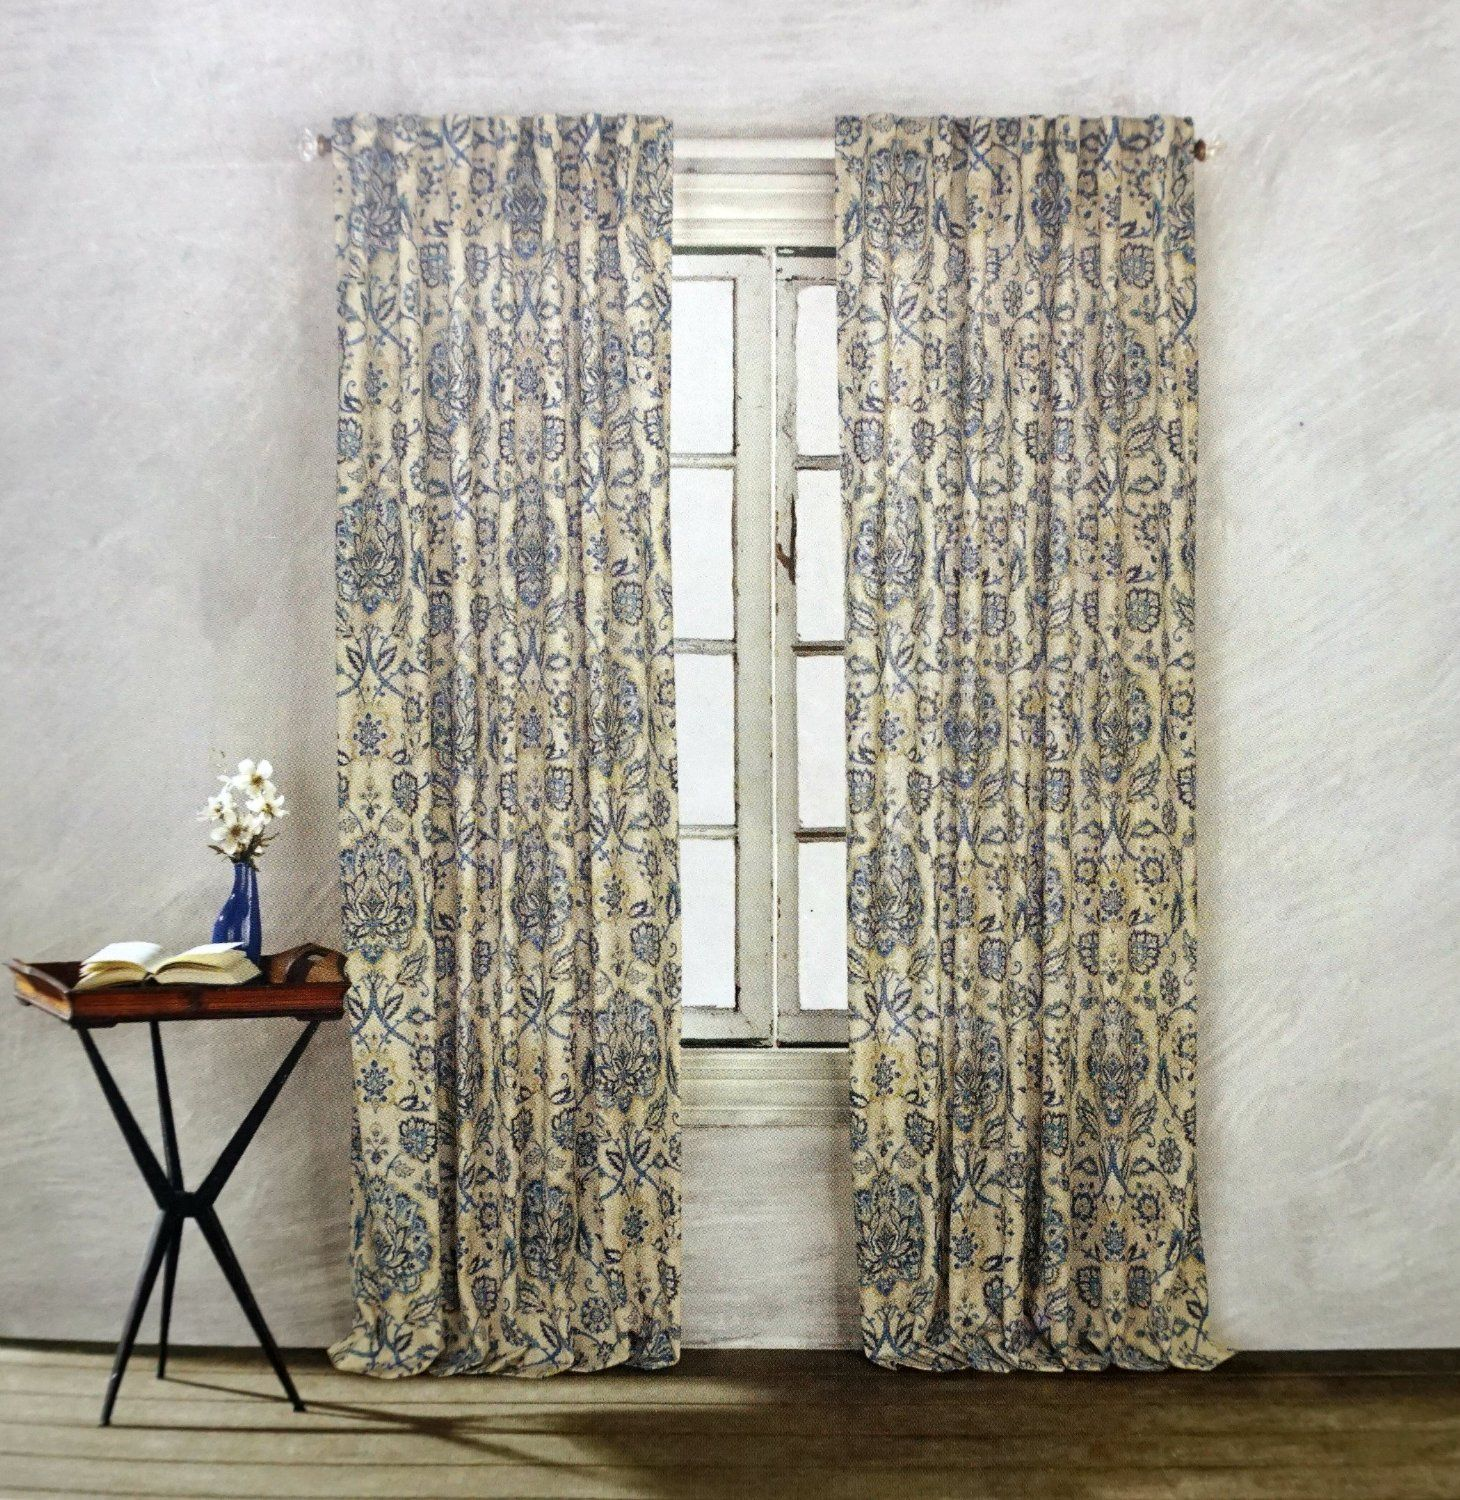 pair medallion cynthia curtain taharihome grey pin window floral flowers rowley panels drapes tahari contemporary silver